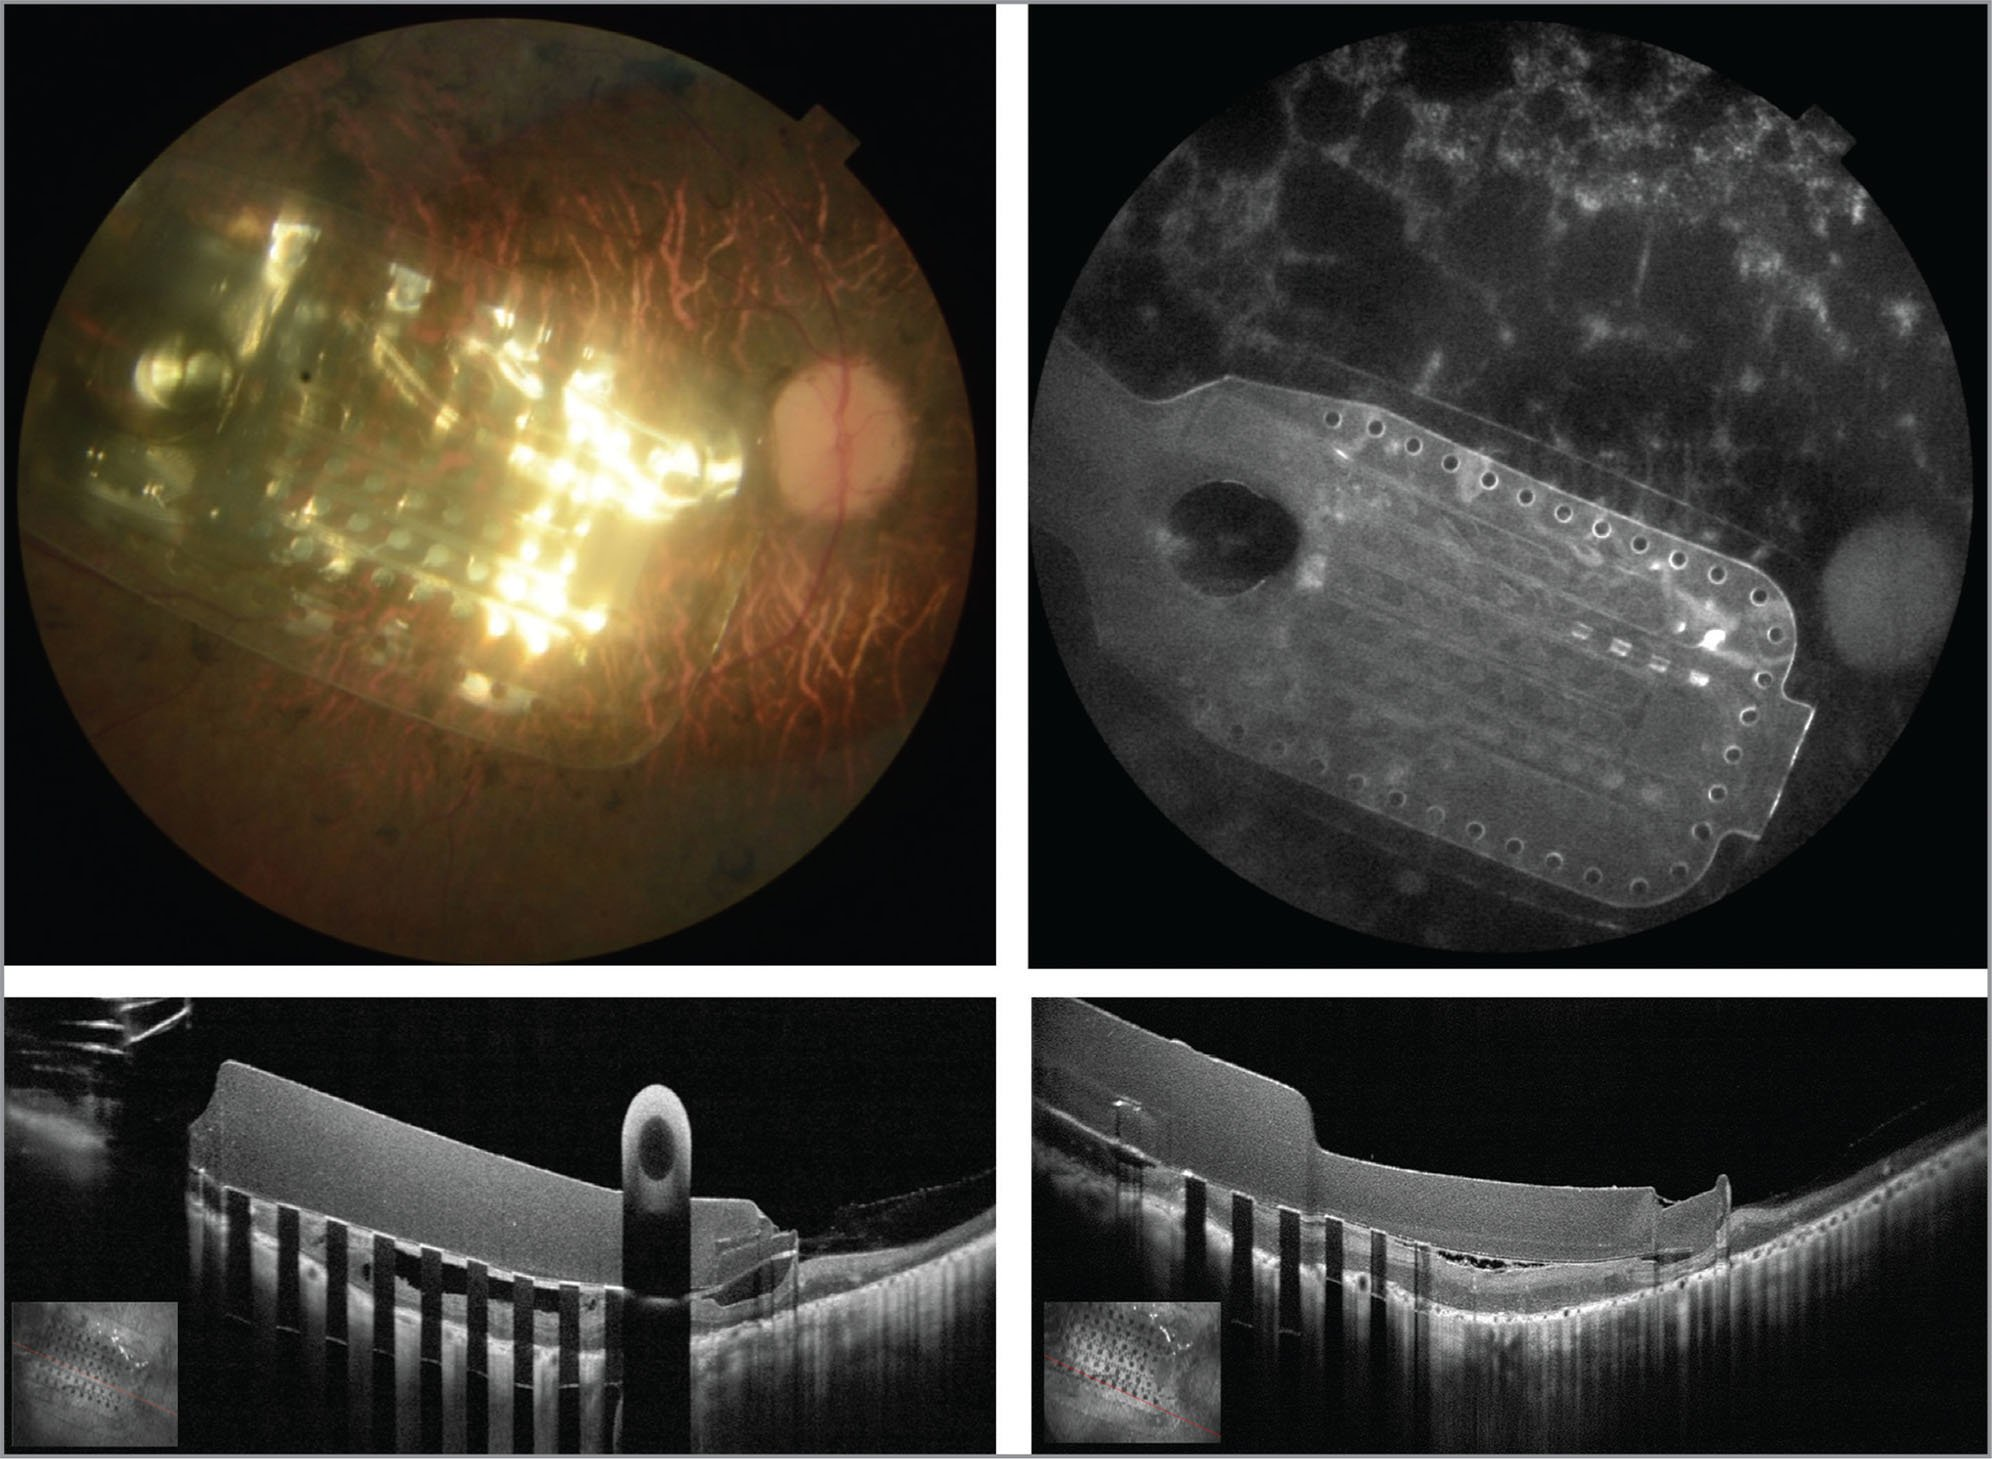 Color fundus photography, fundus autofluorescence, and enhanced high-definition 12.00 mm scan length optical coherence tomography (OCT) images of the electrode array-implanted eye 1 year after the surgery using OCT angiography.